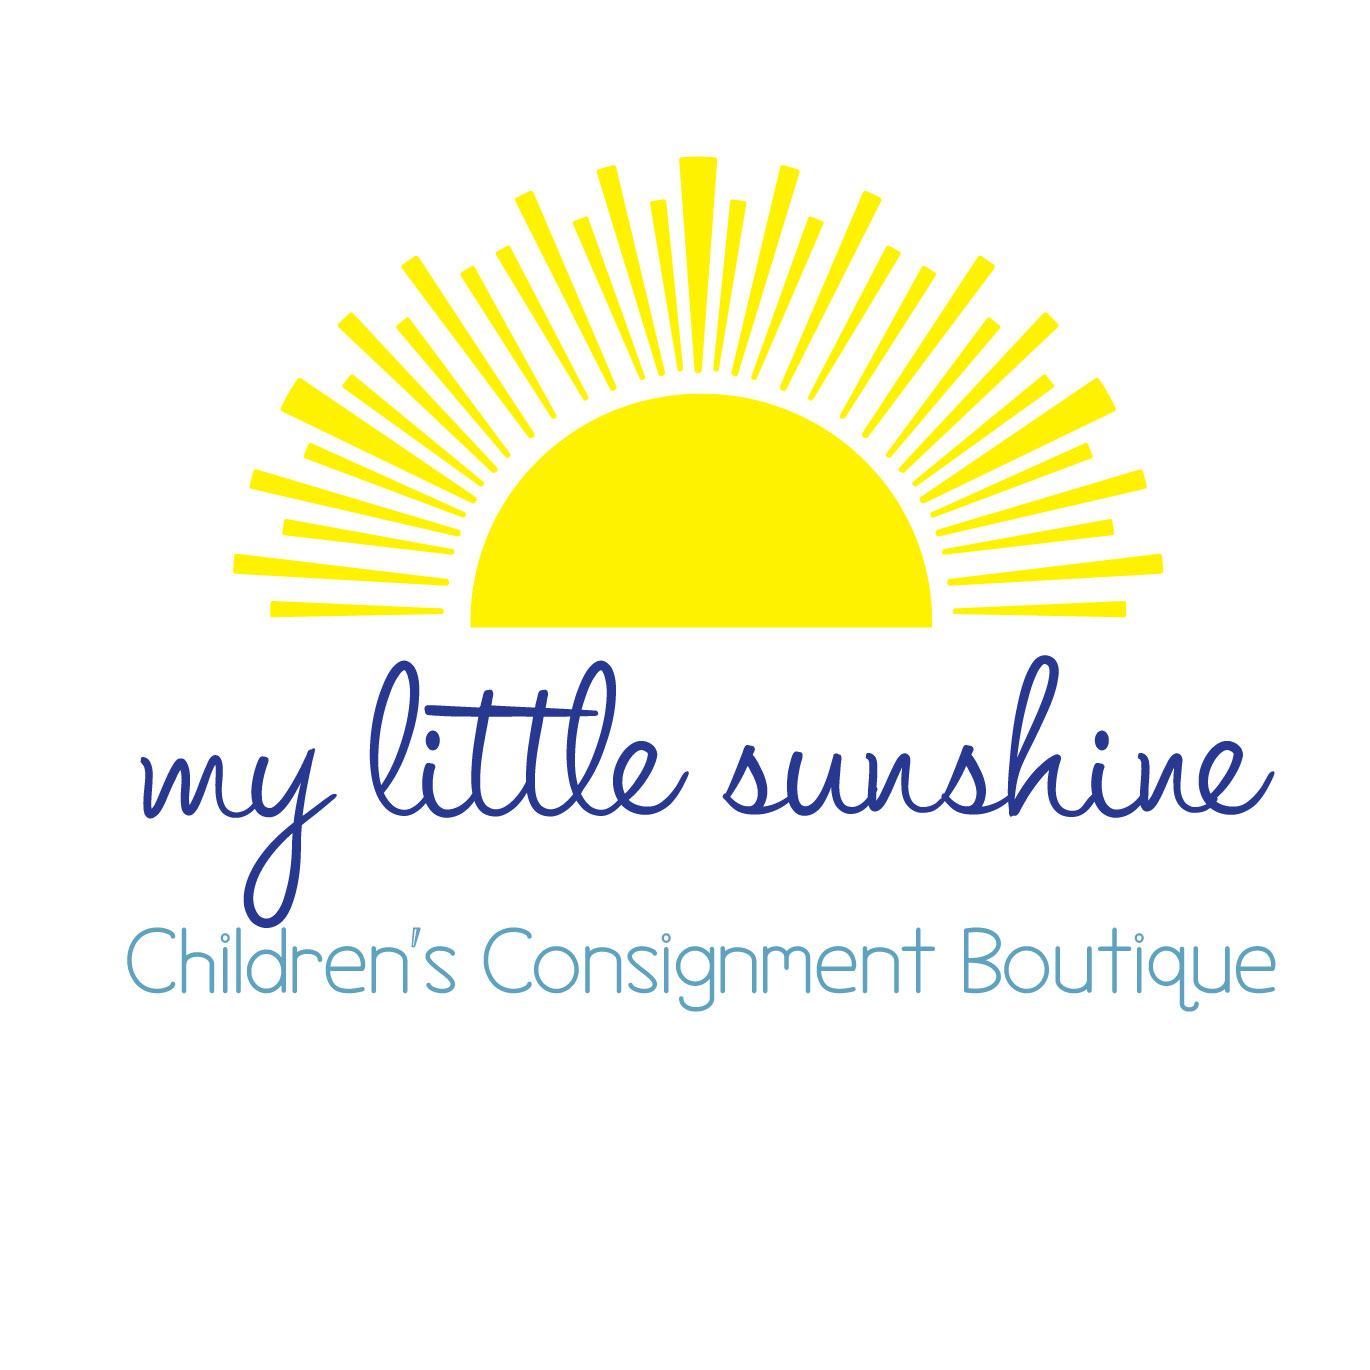 My Little Sunshine Children's Consignment Boutique